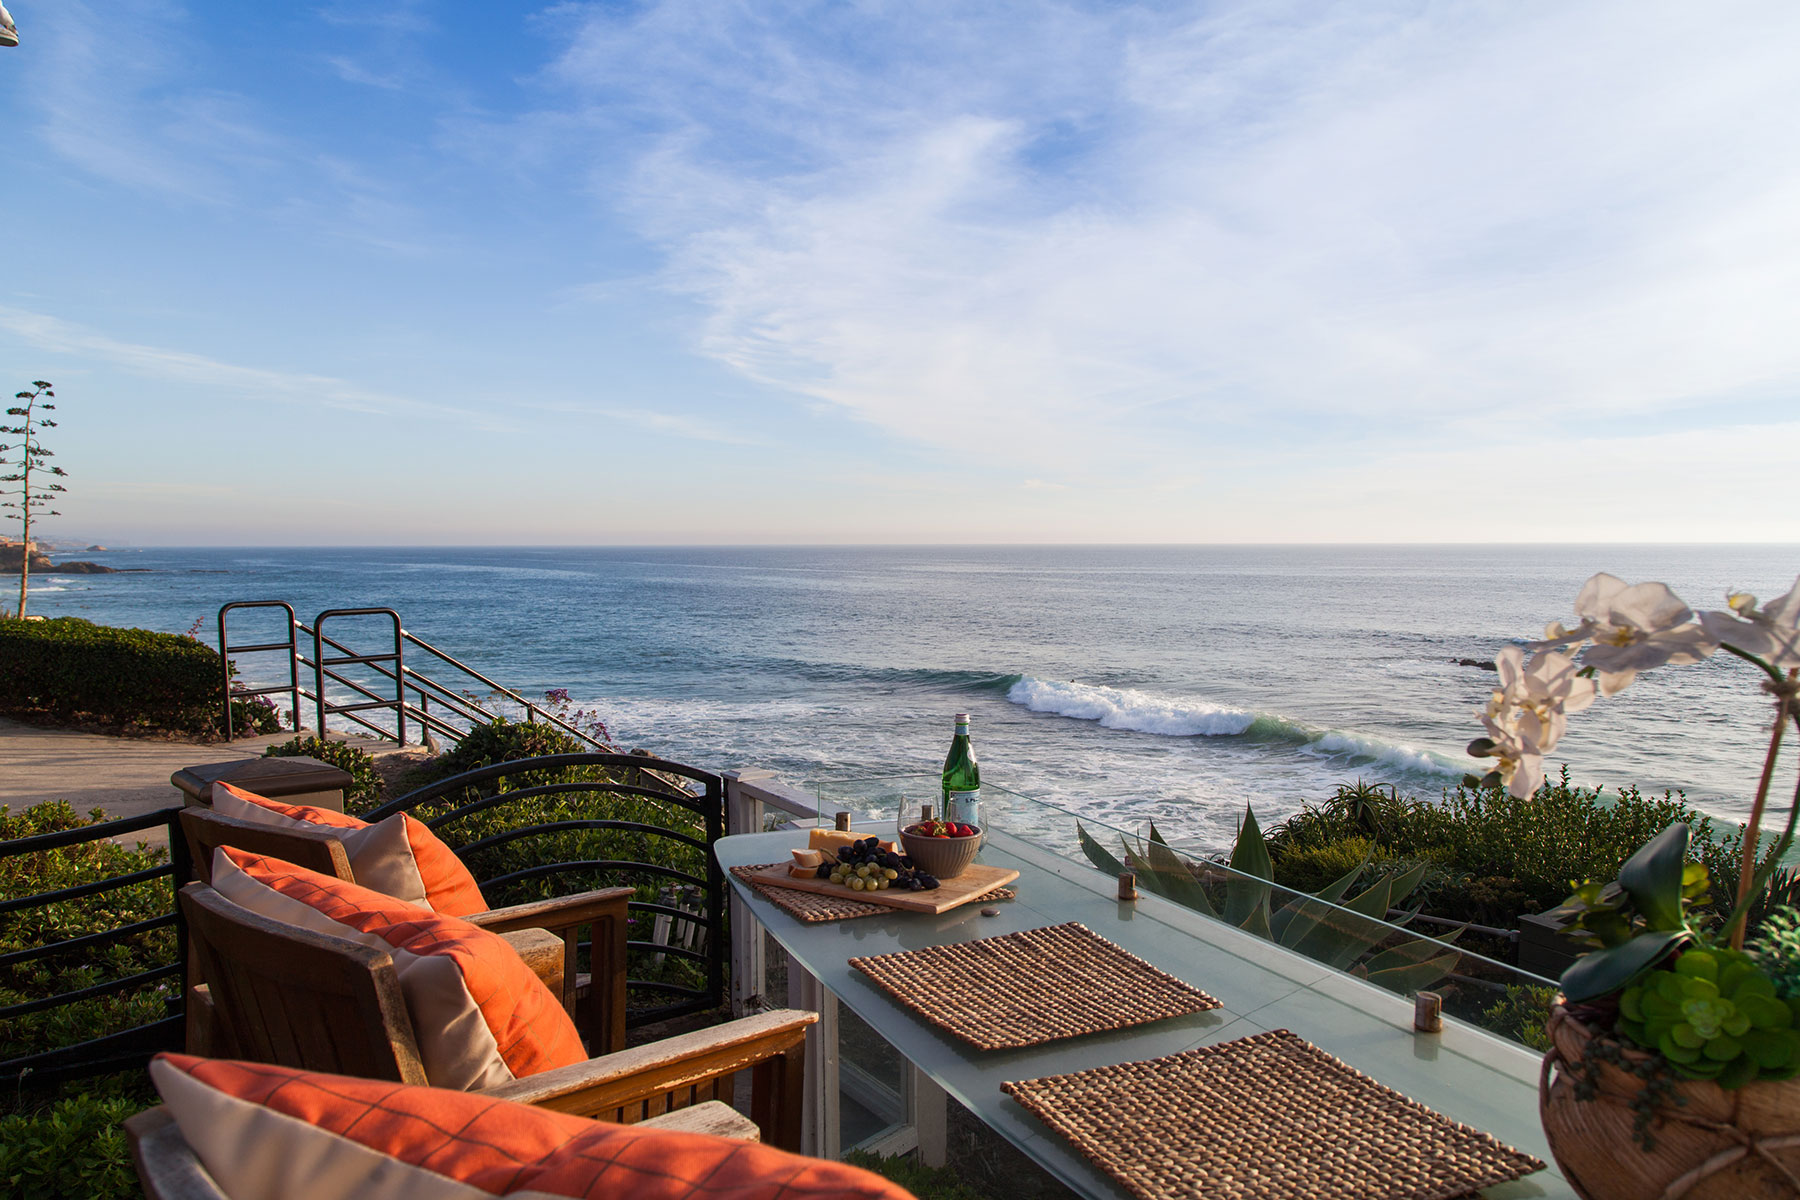 Single Family Home for Sale at 150 Cress Street Laguna Beach, California, 92651 United States